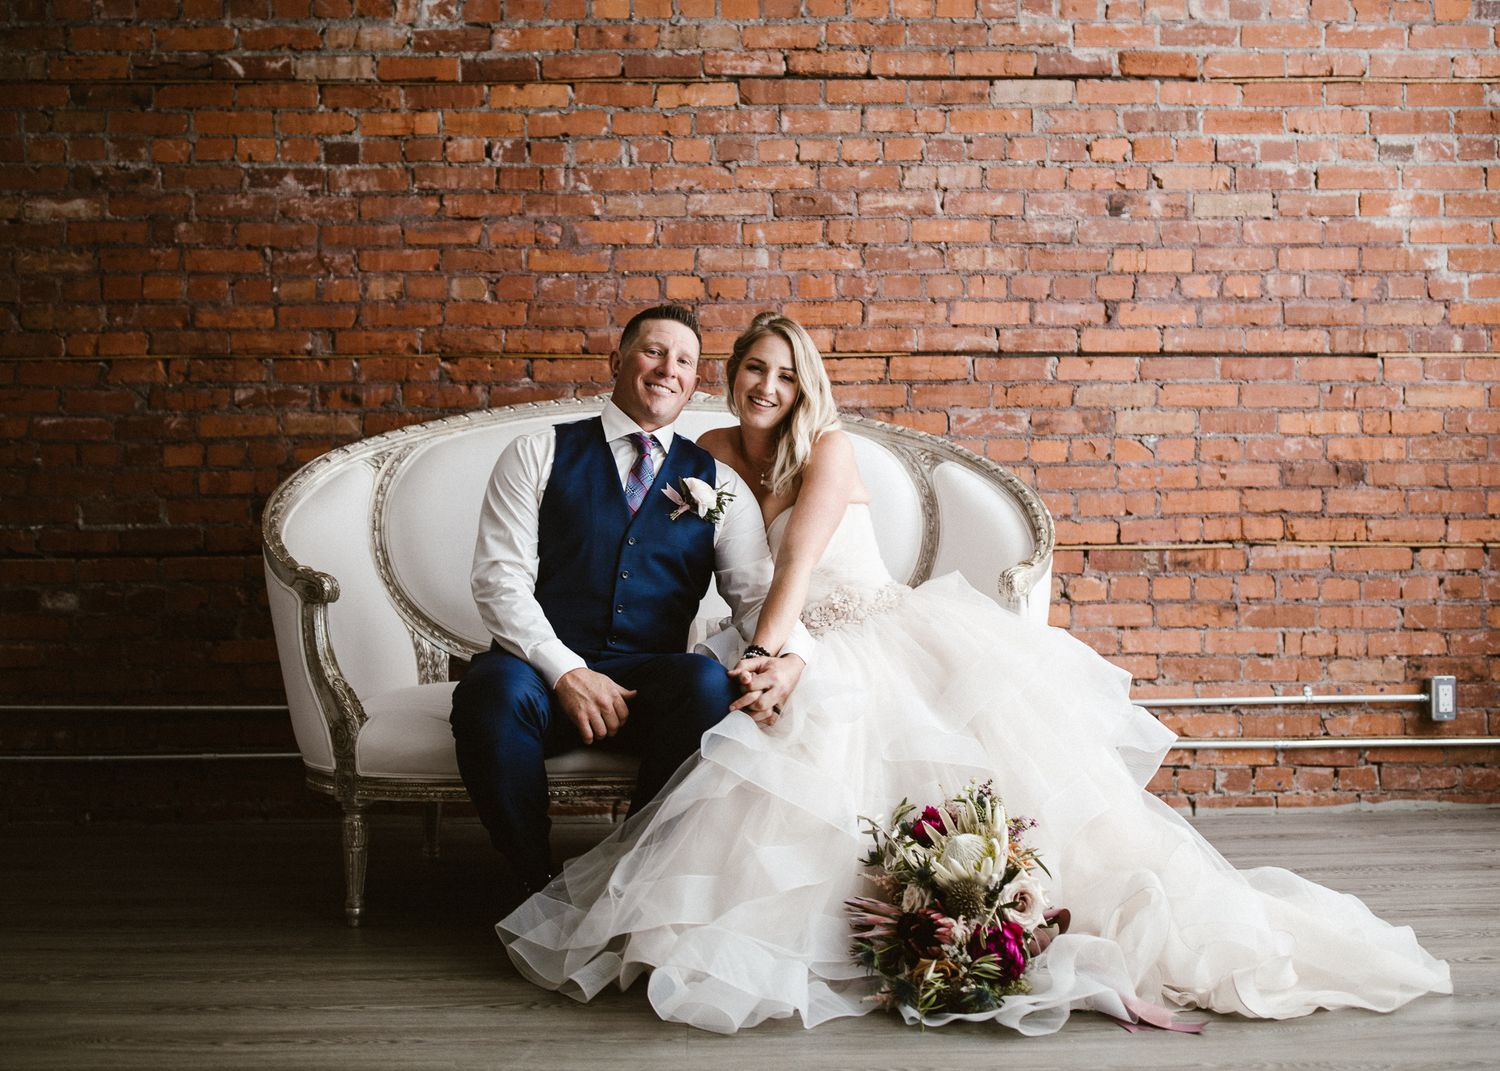 Calgary wedding photographer goes to Venue 308 for elopement